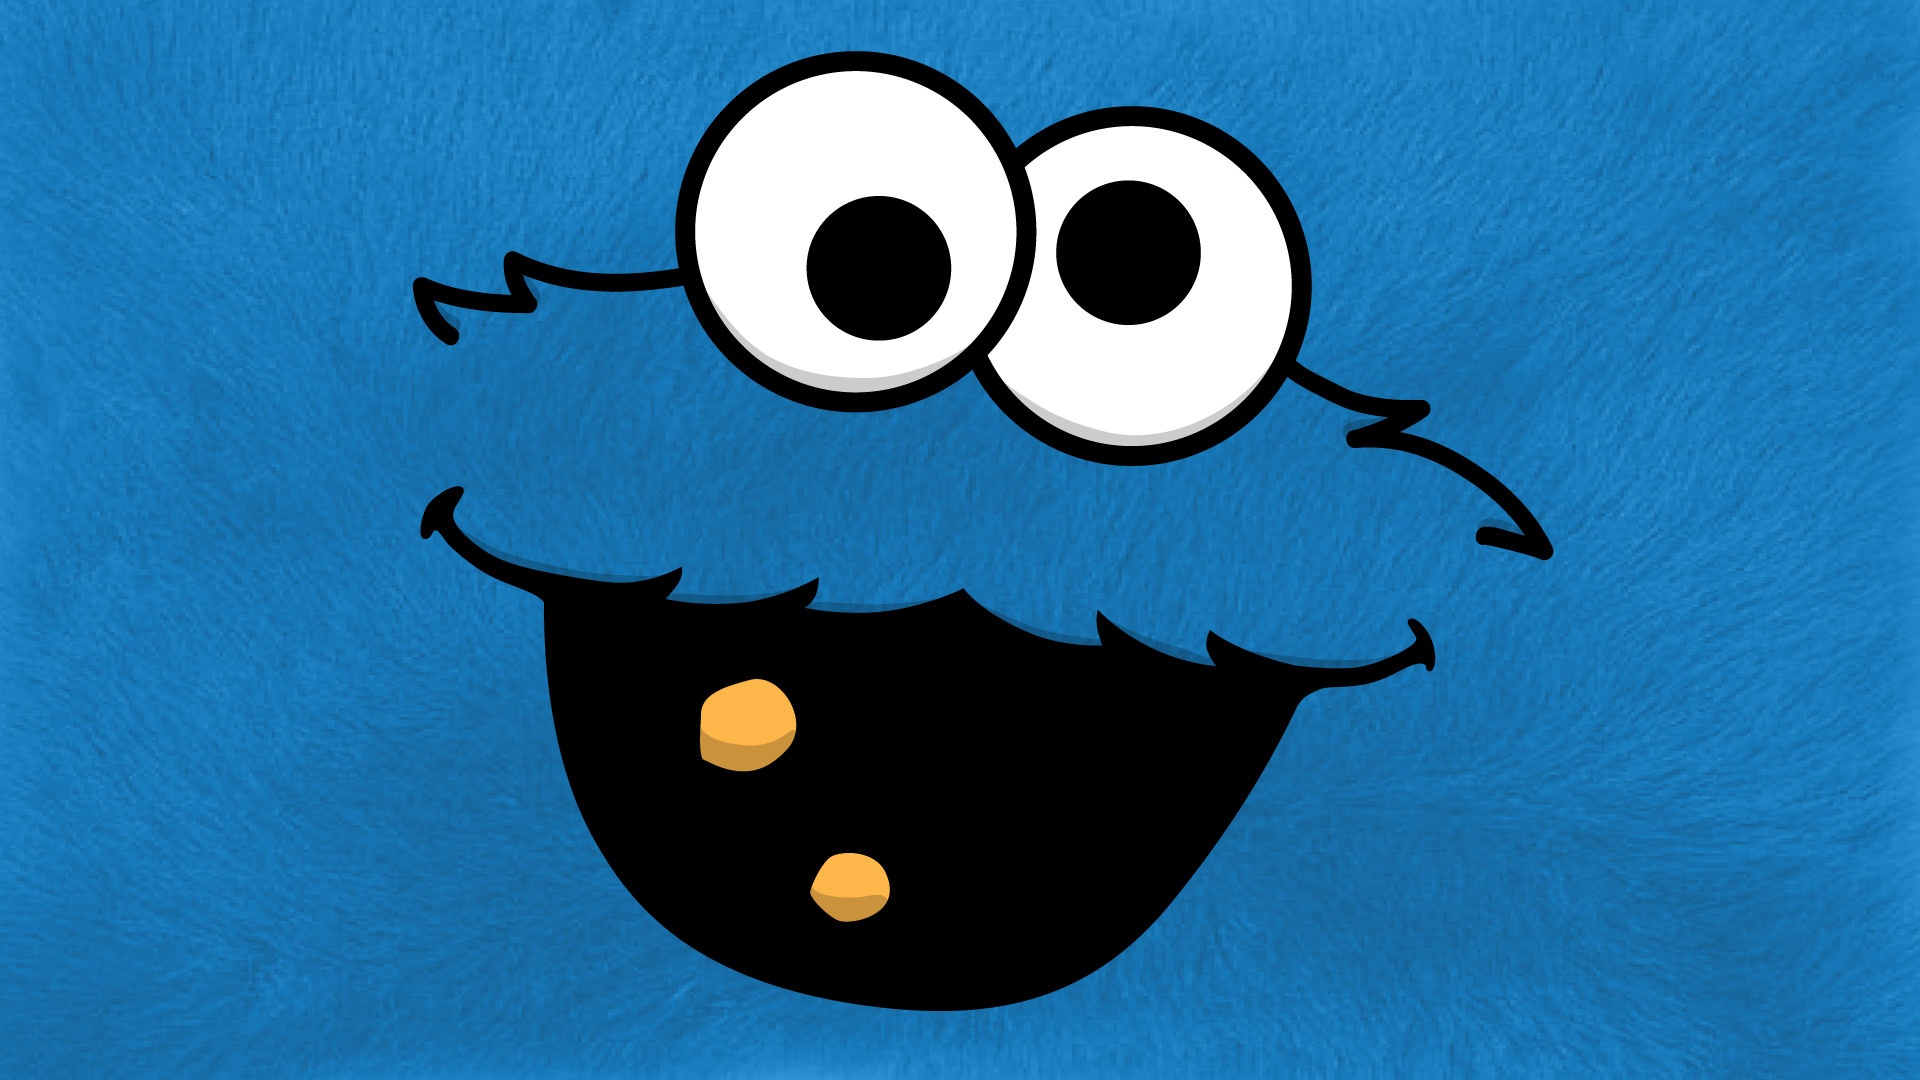 WALLPAPER IPHONE 6 ELMO Cookie Monster Wallpapers 69 Background Pictures